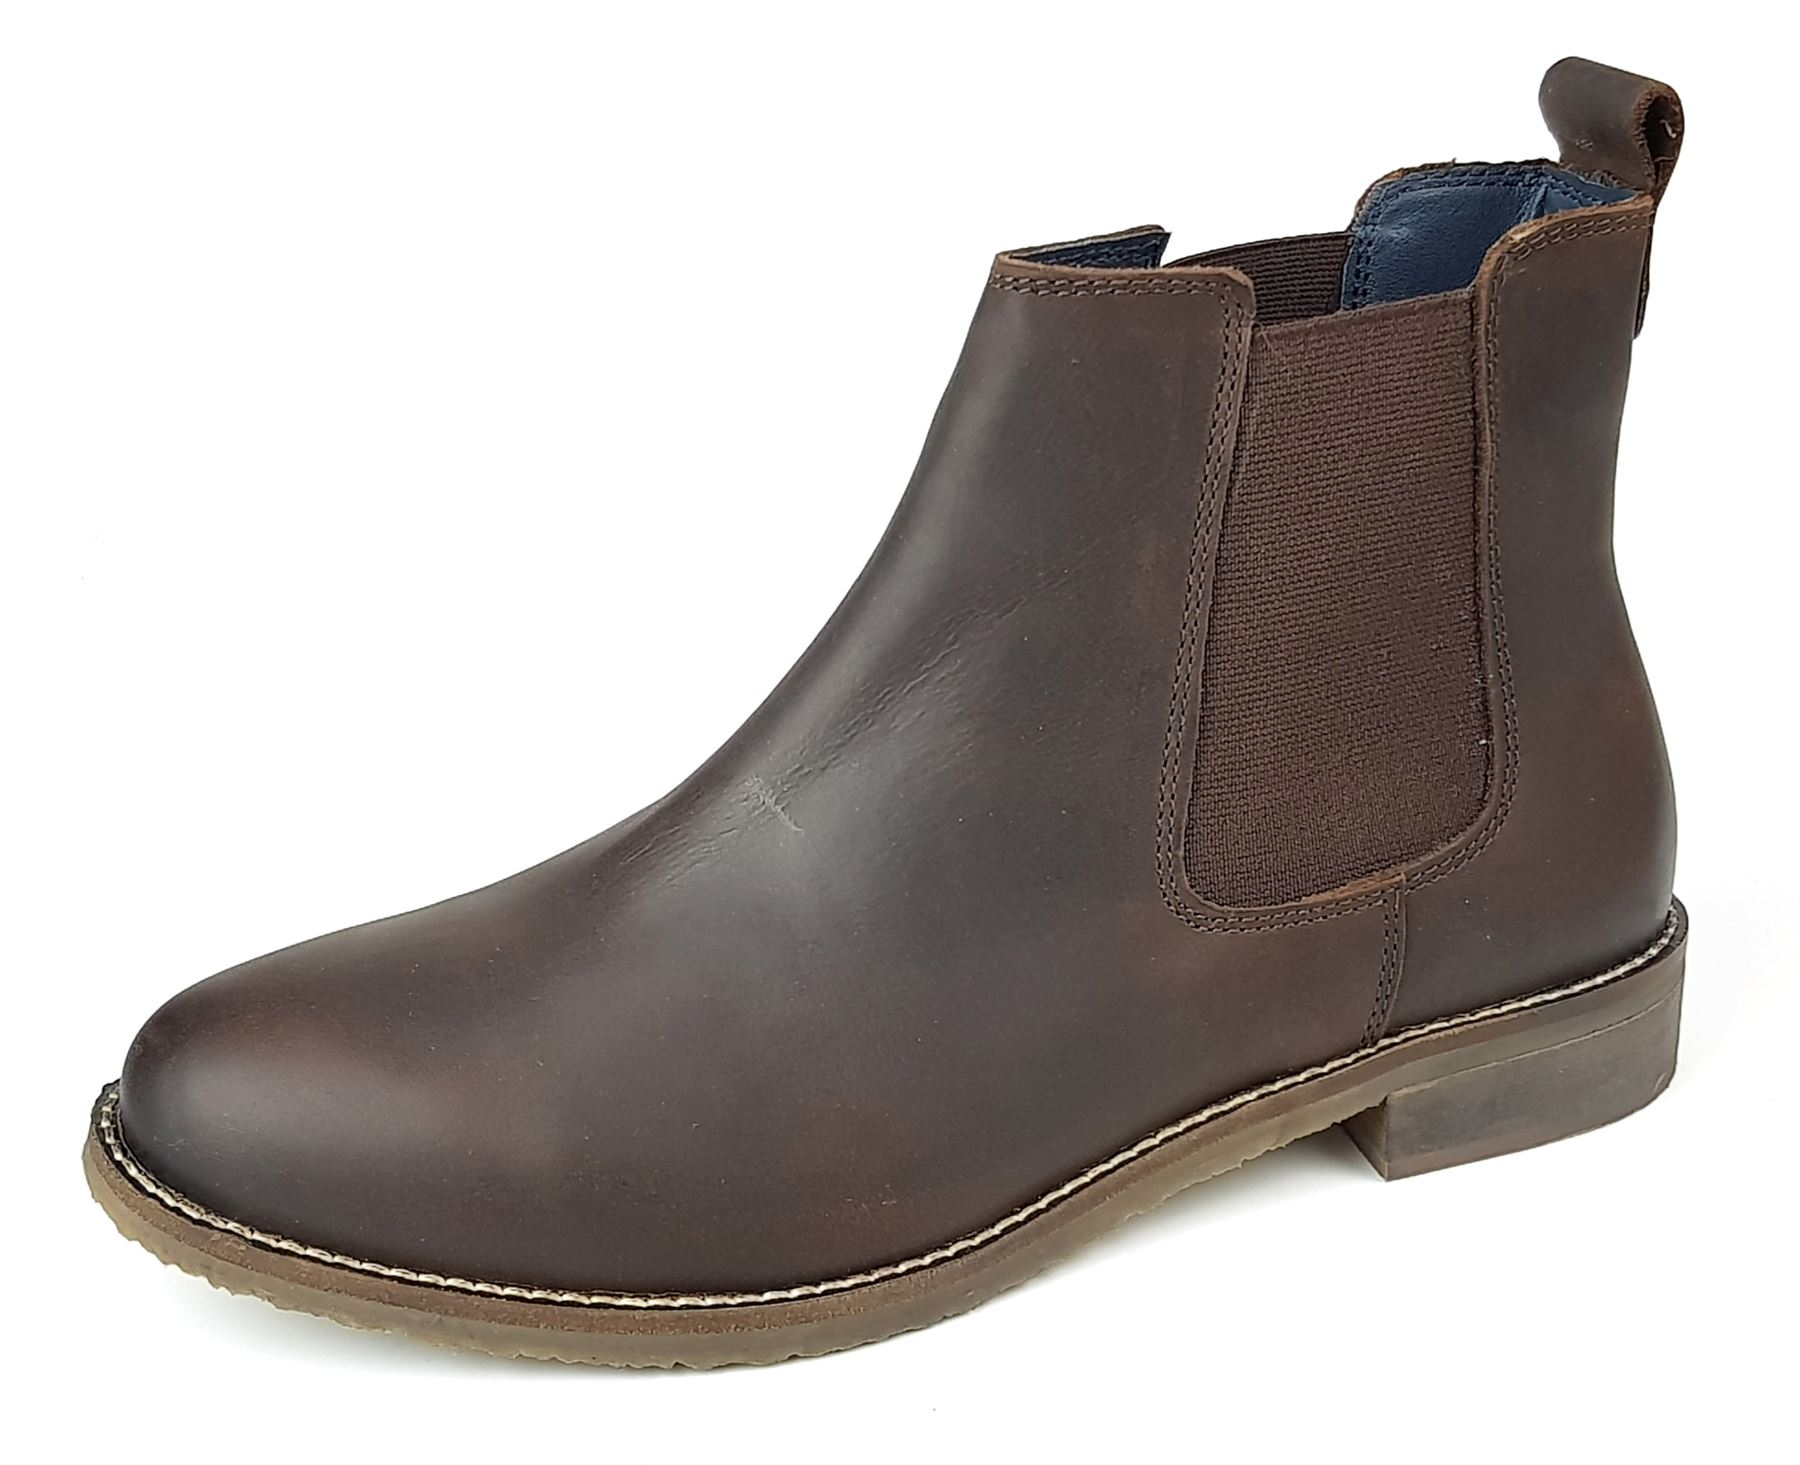 67024df84c390 Frank James Aintree Ladies Womans Tan Brown Leather Chelsea Pull On Boots.  These real leather chelsea boots feature a leather upper, cushioned insole,  ...